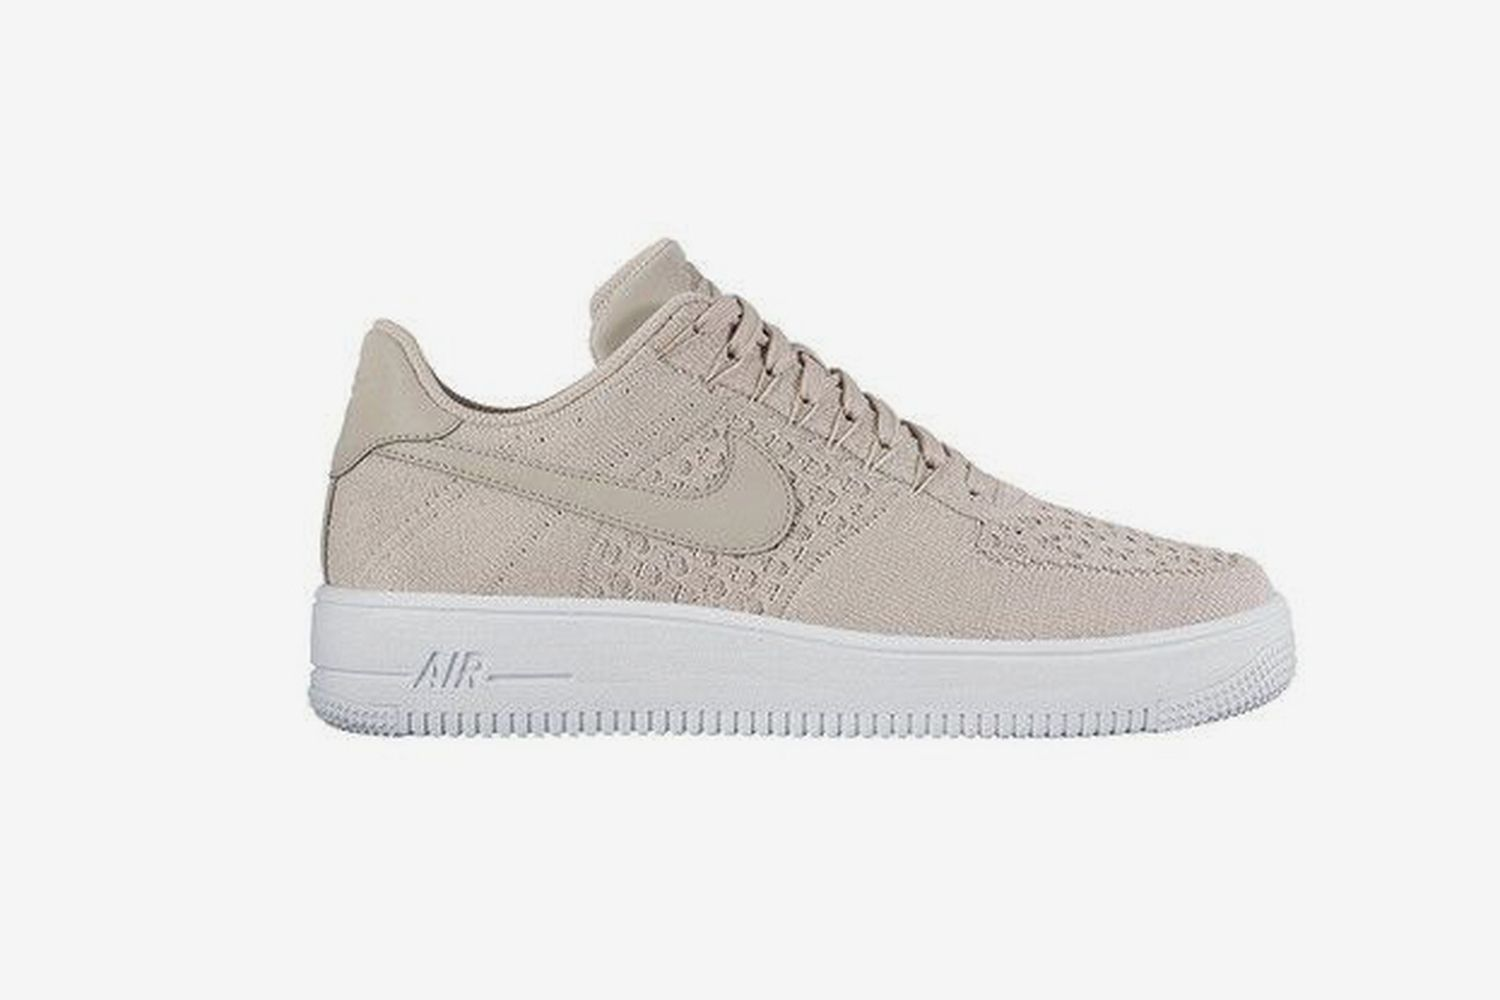 Air Force 1 Flynit Low